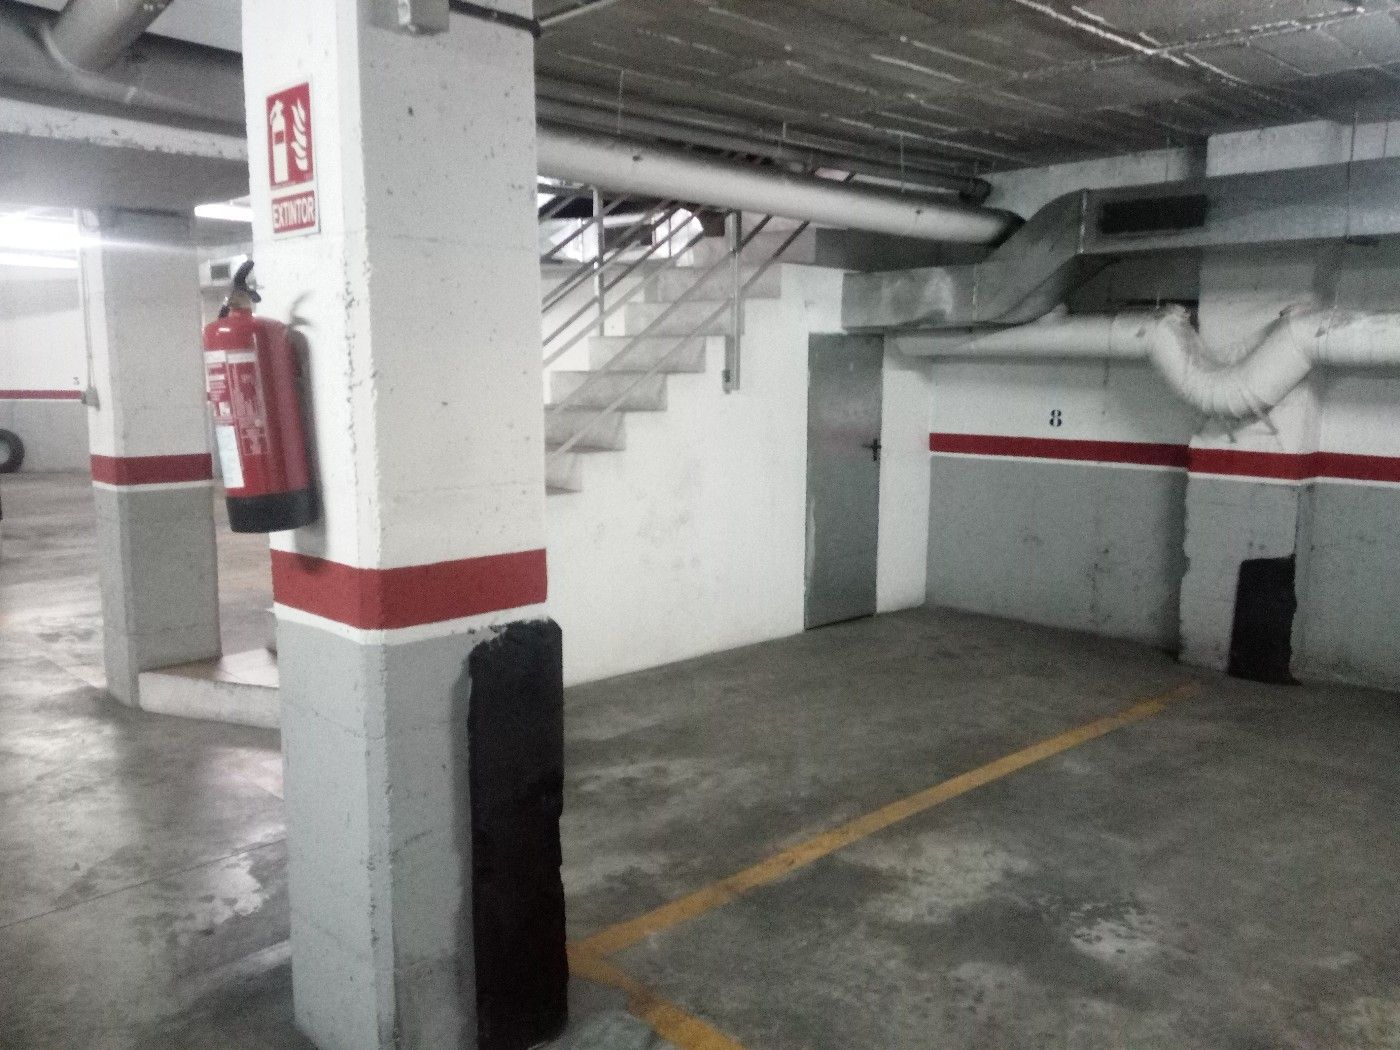 Car parking in Rambla francesc macia, 155. Parking y trastero